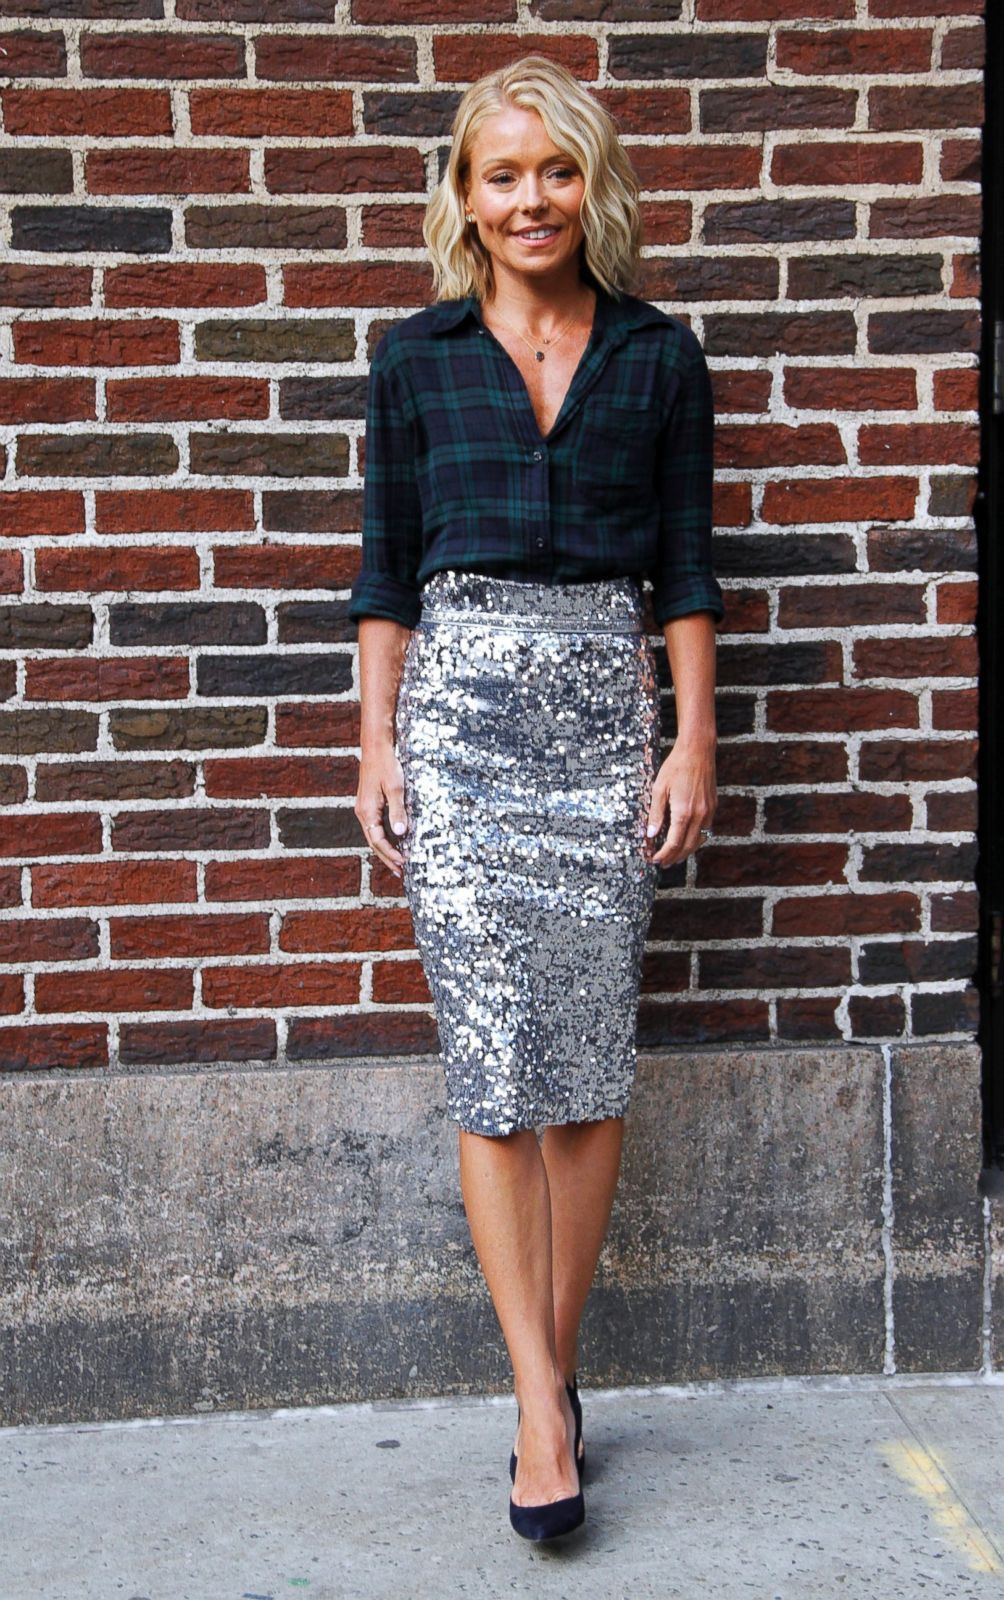 Colour outfit kelly ripa outfit little black dress, black and white